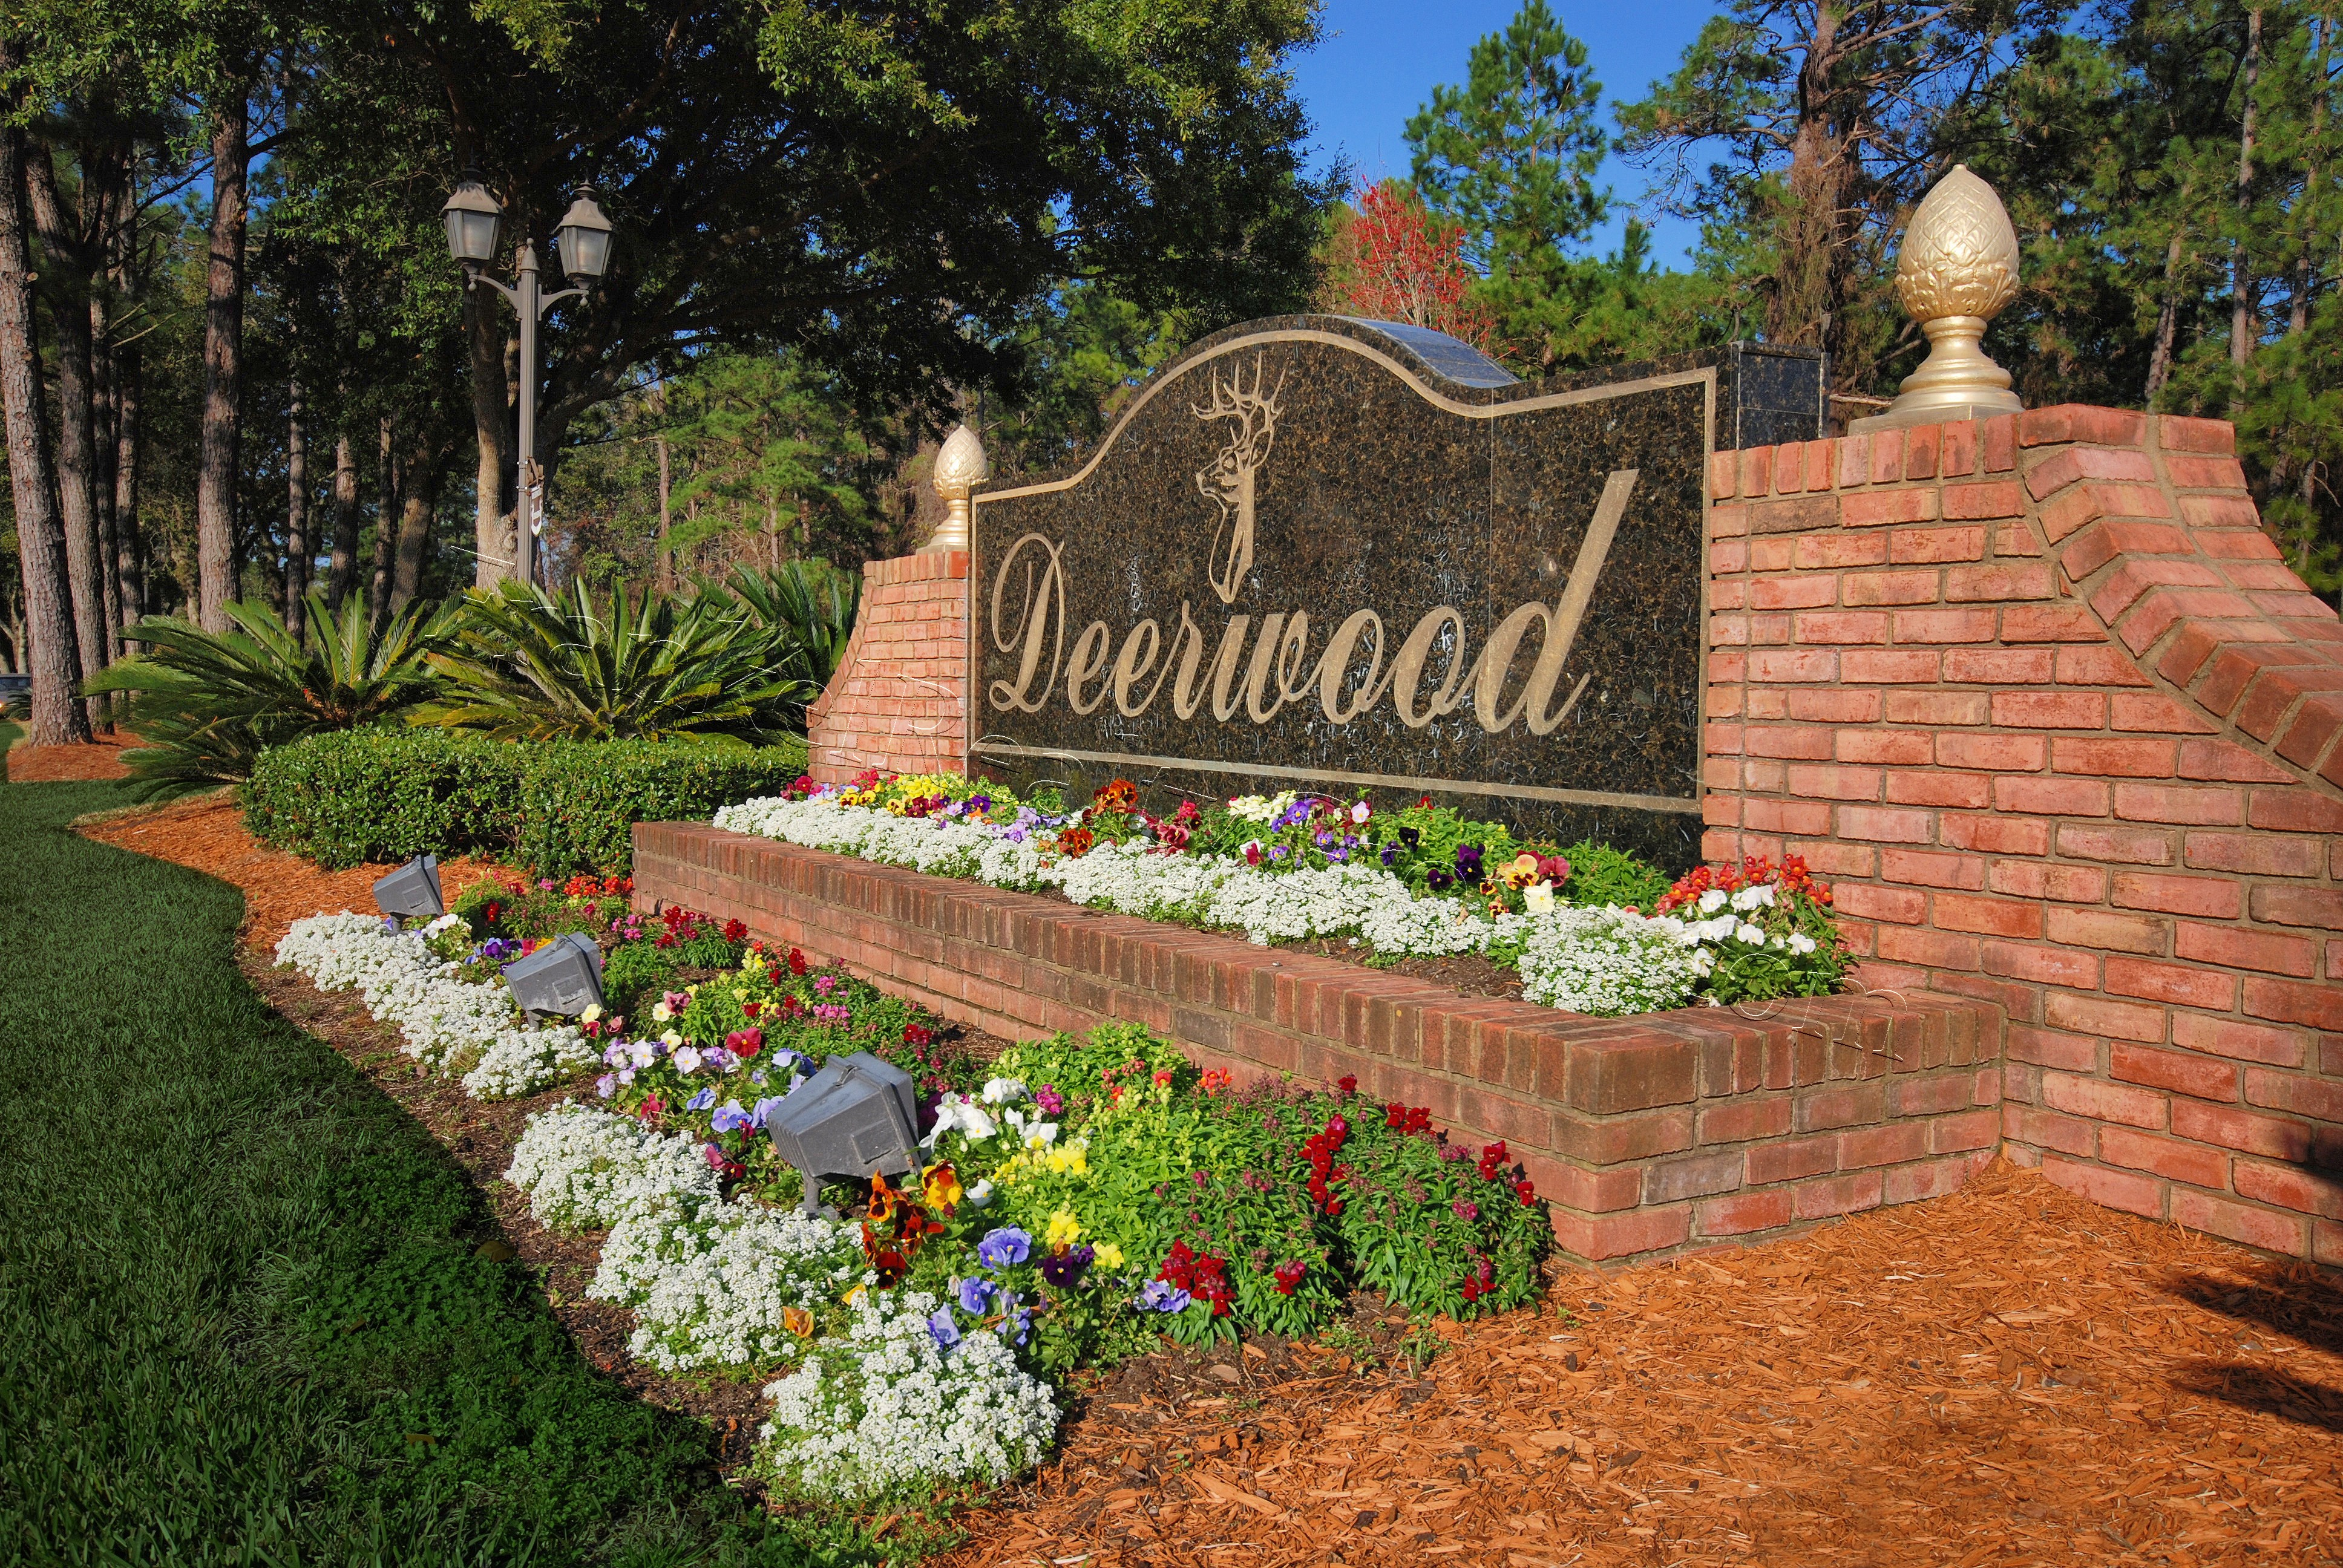 Deerwood Real Estate | Country Club Homes For Sale Jacksonville